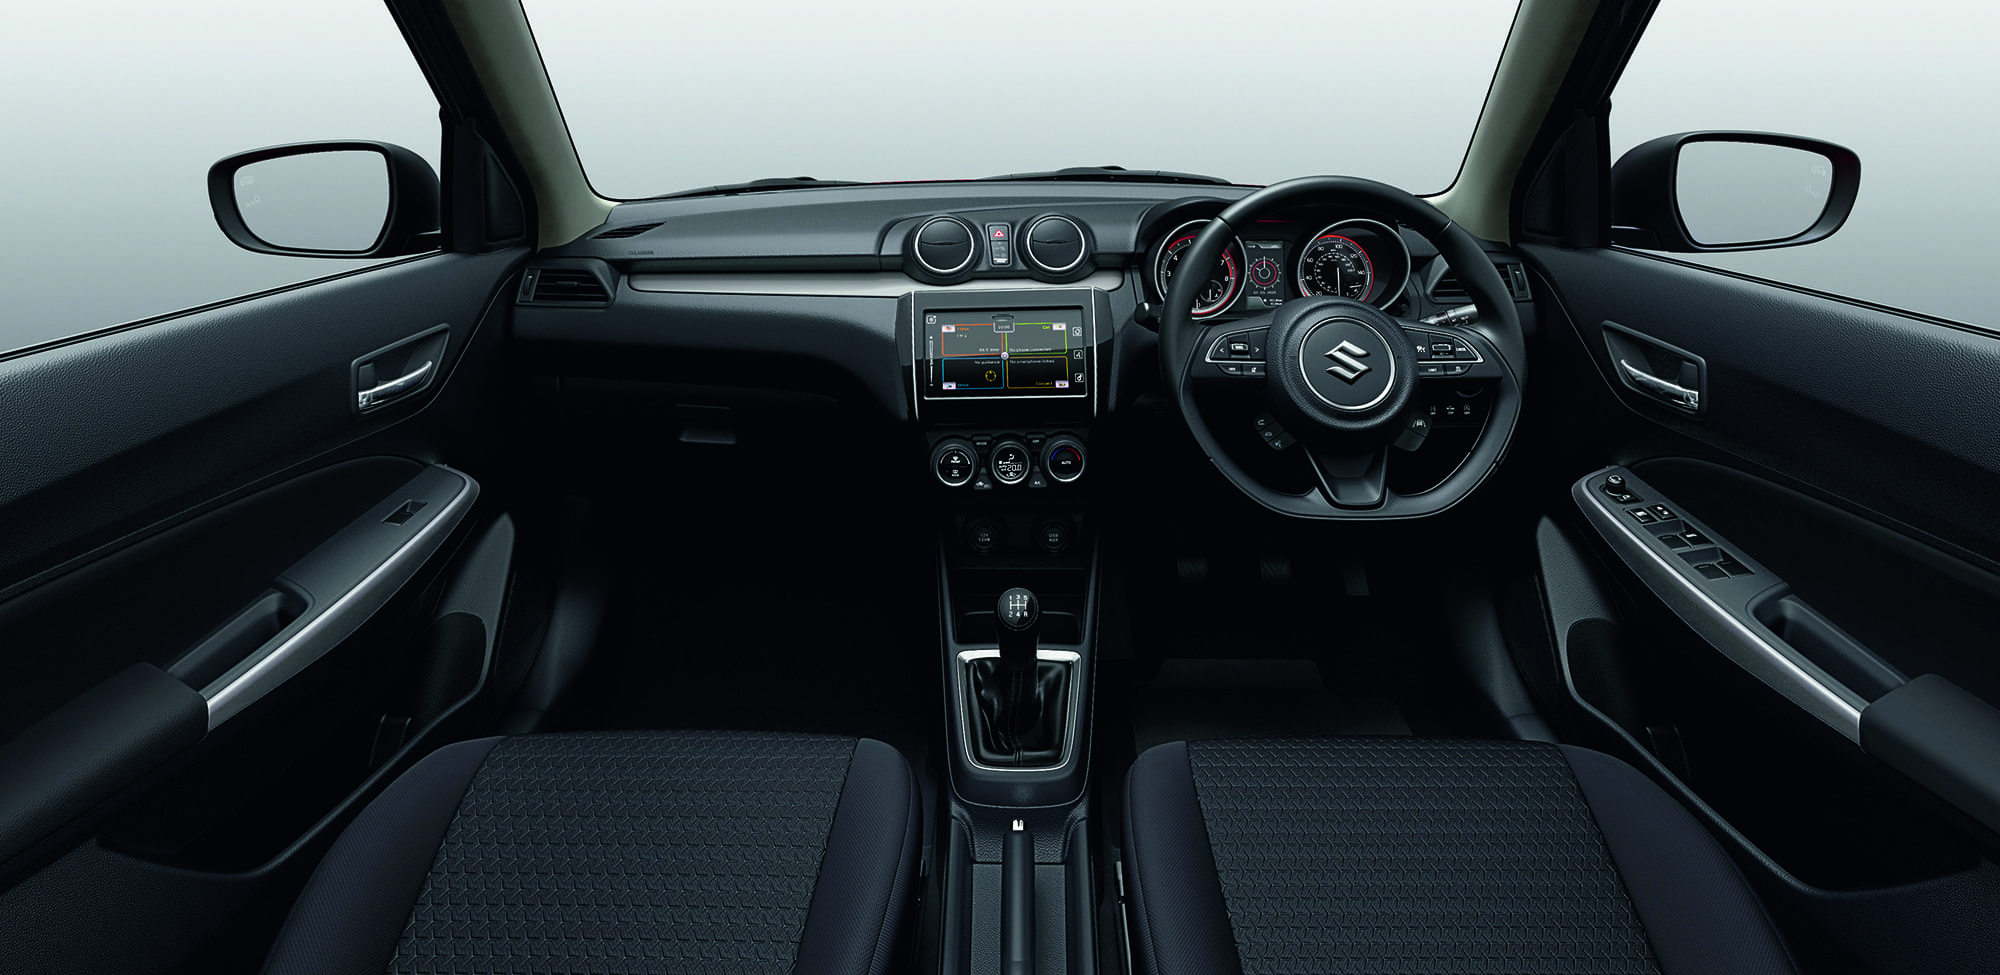 Dynamic styling - inside and out